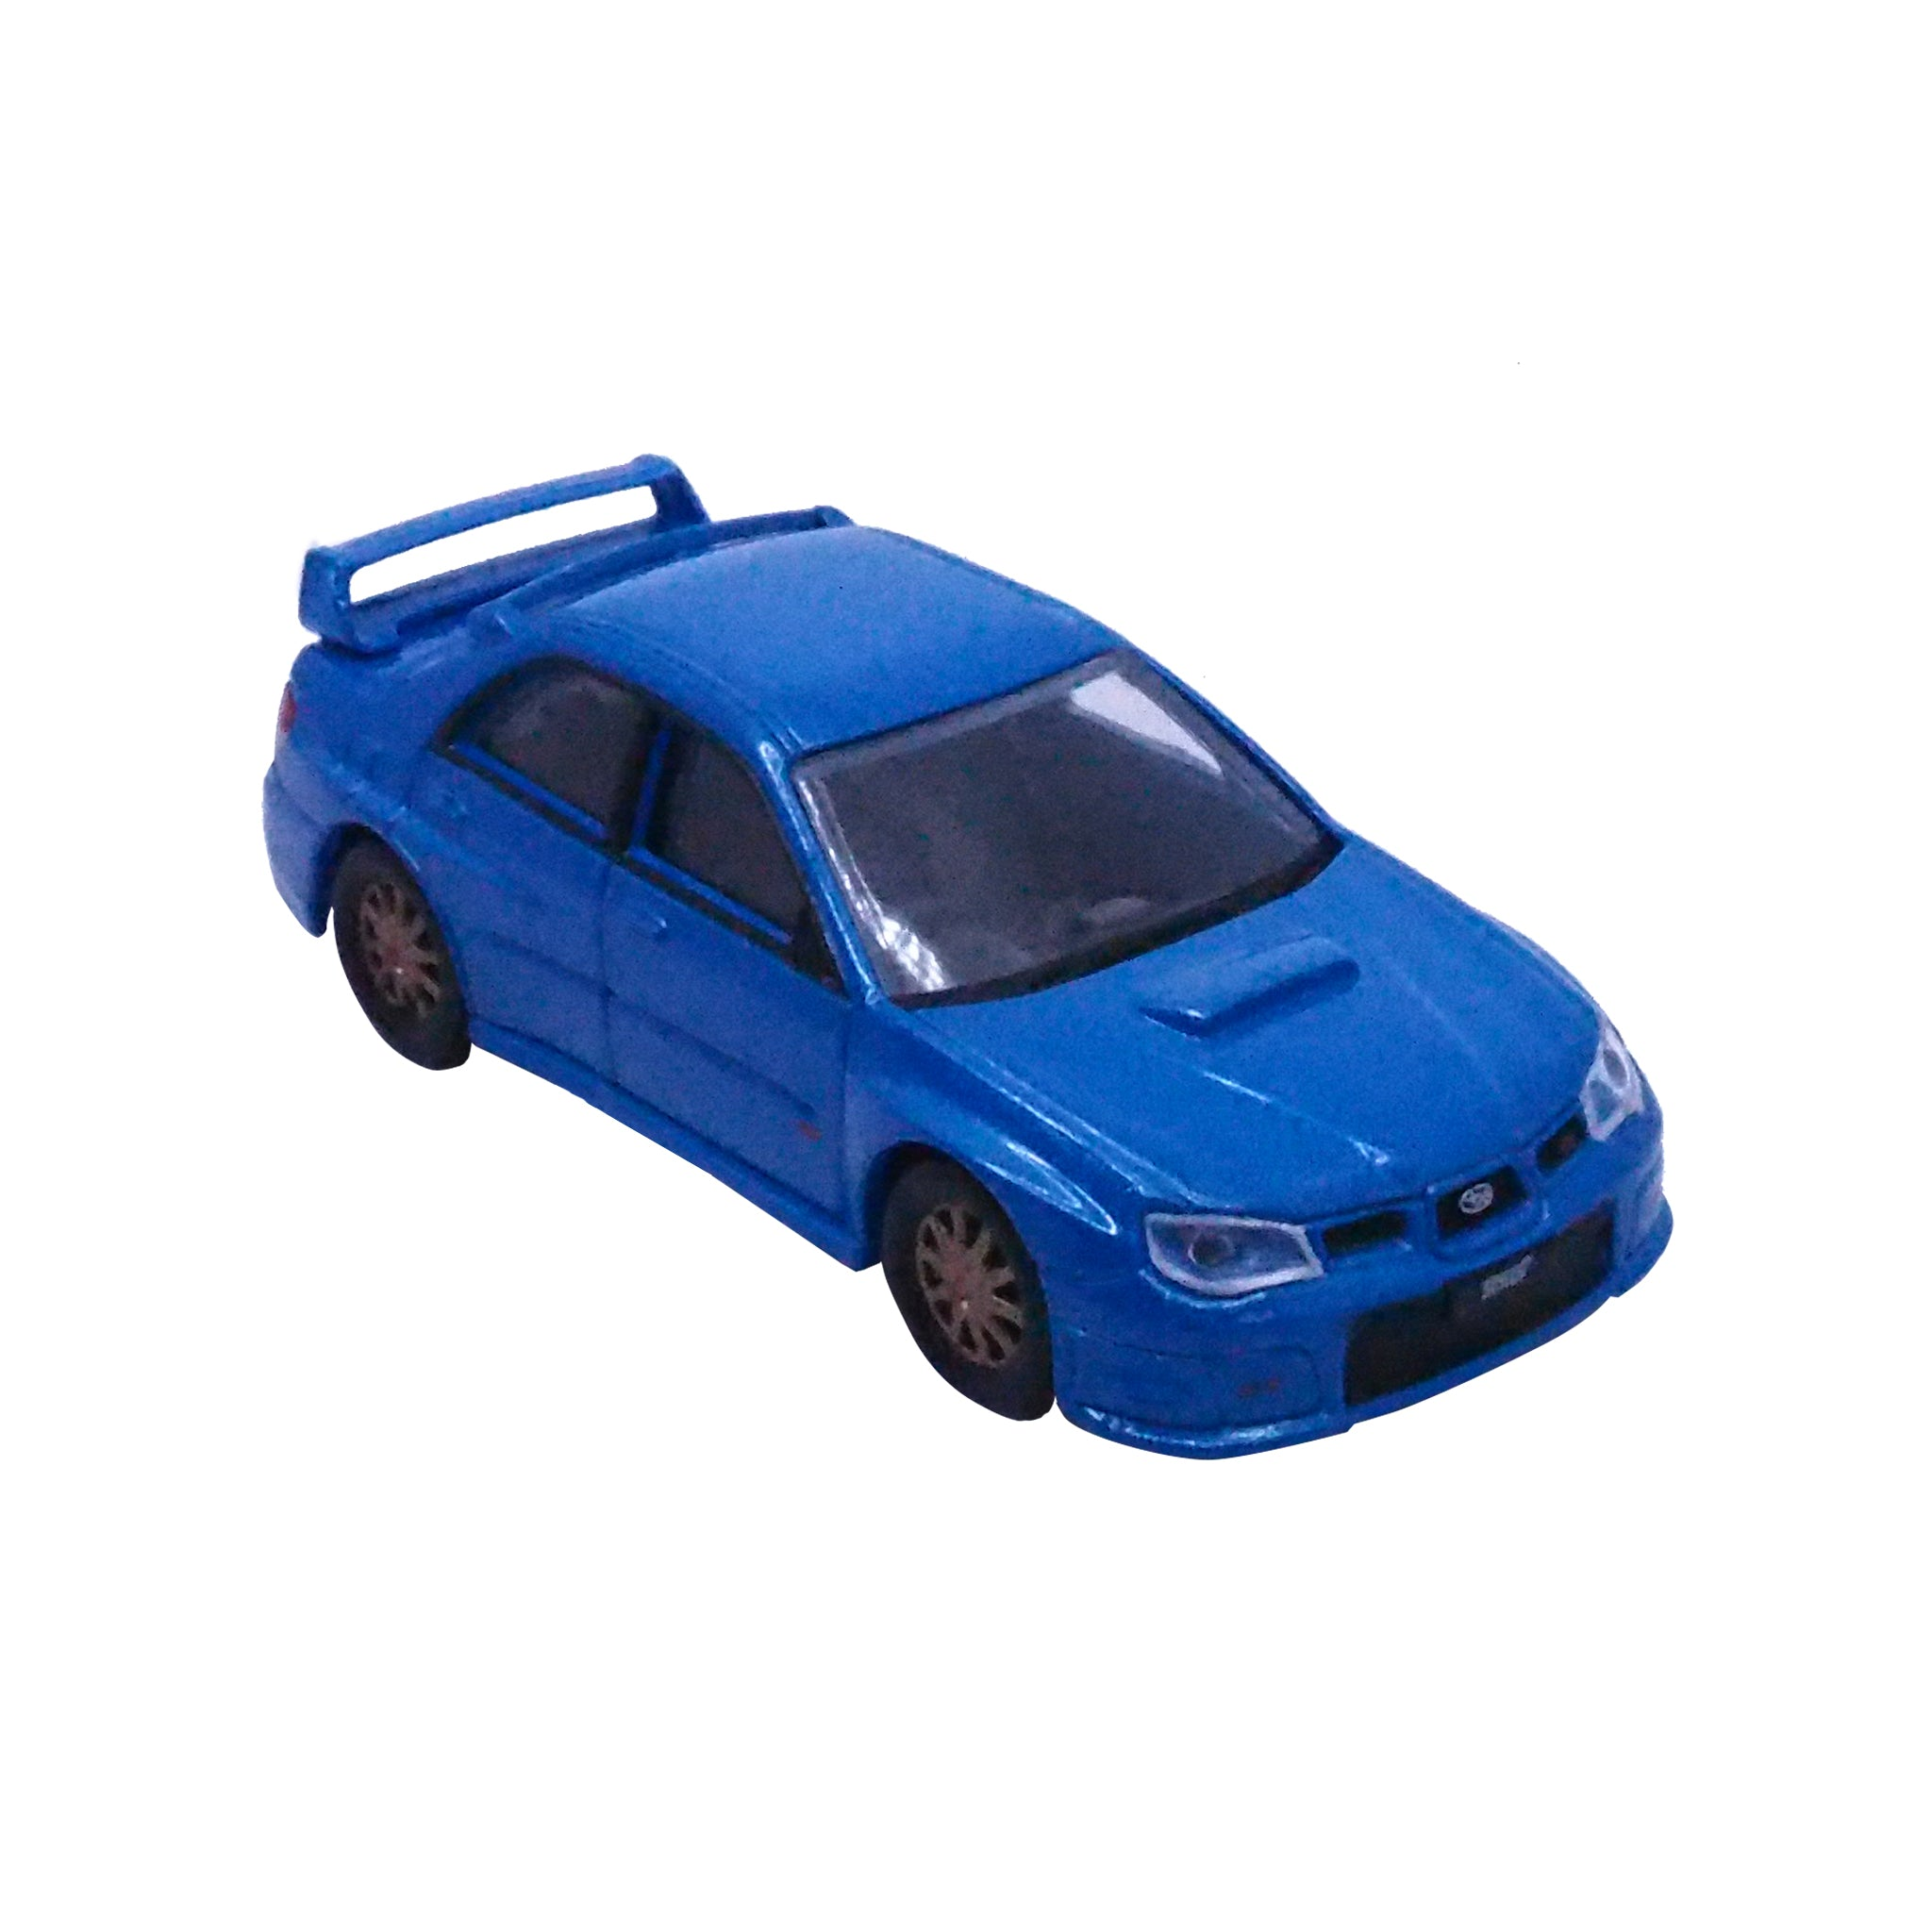 Subaru STI Diecast Model Car 2005